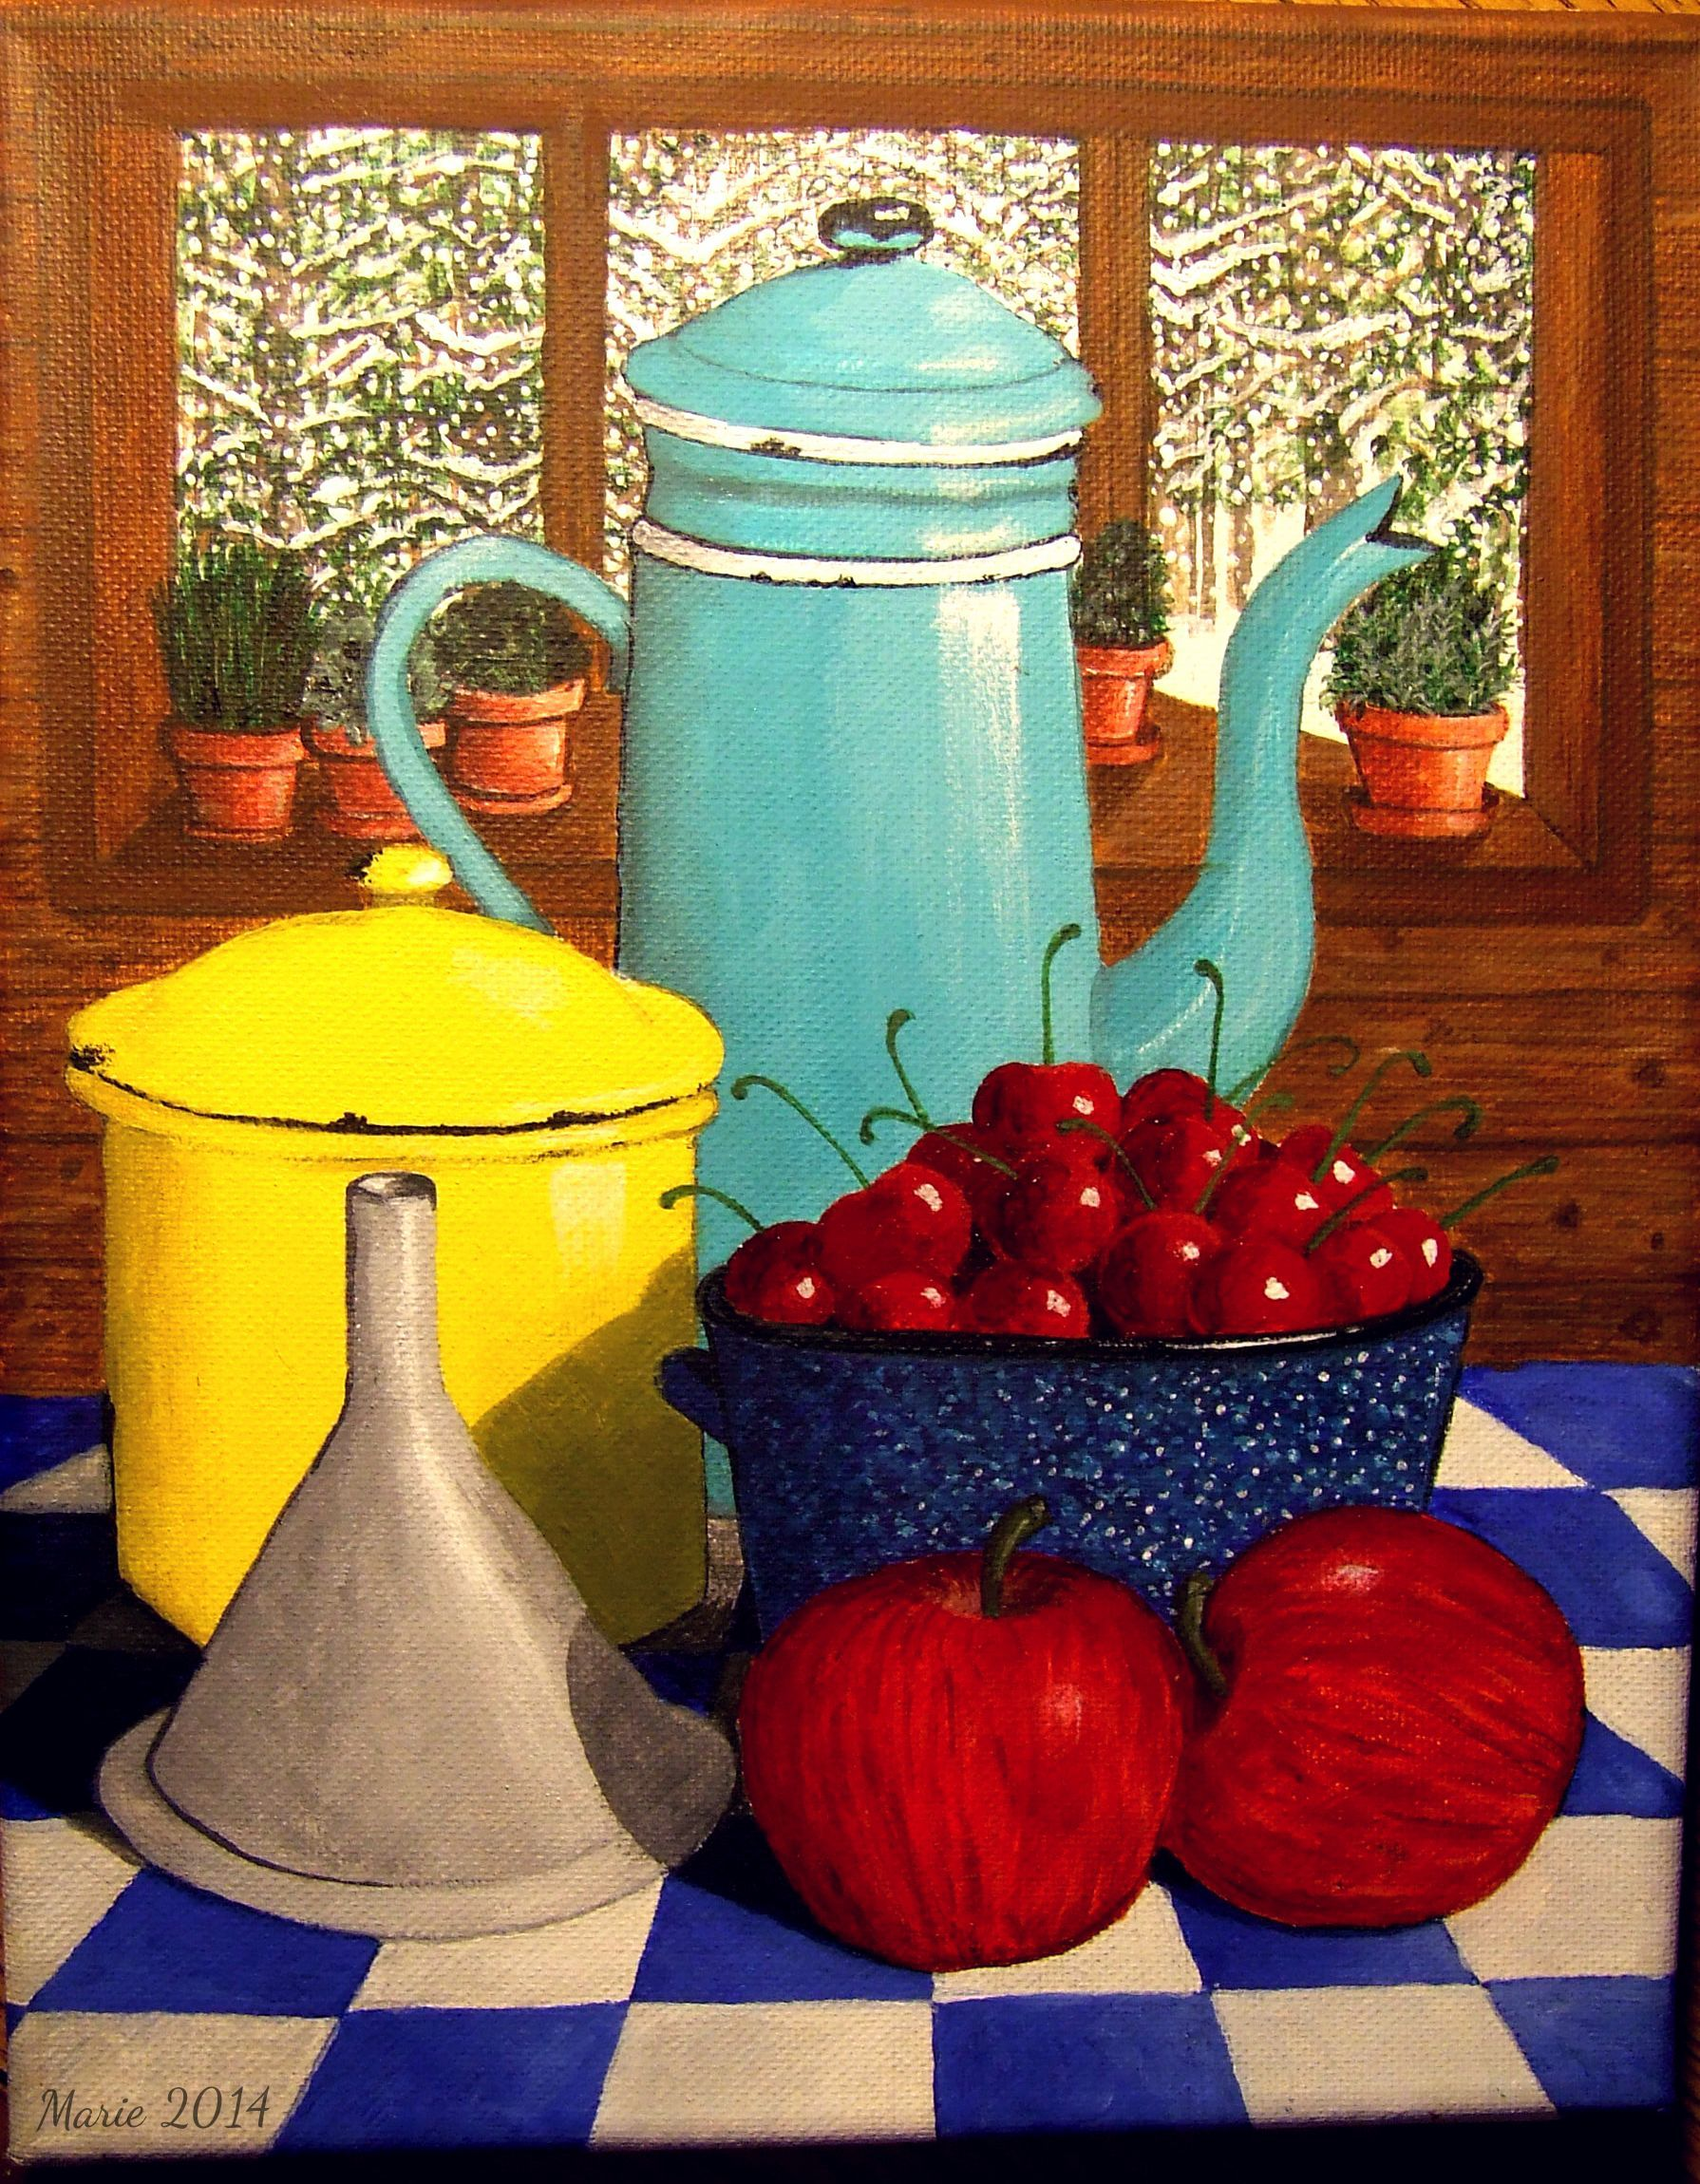 Tins and cherries, Still Life by Marie L. Cassidy